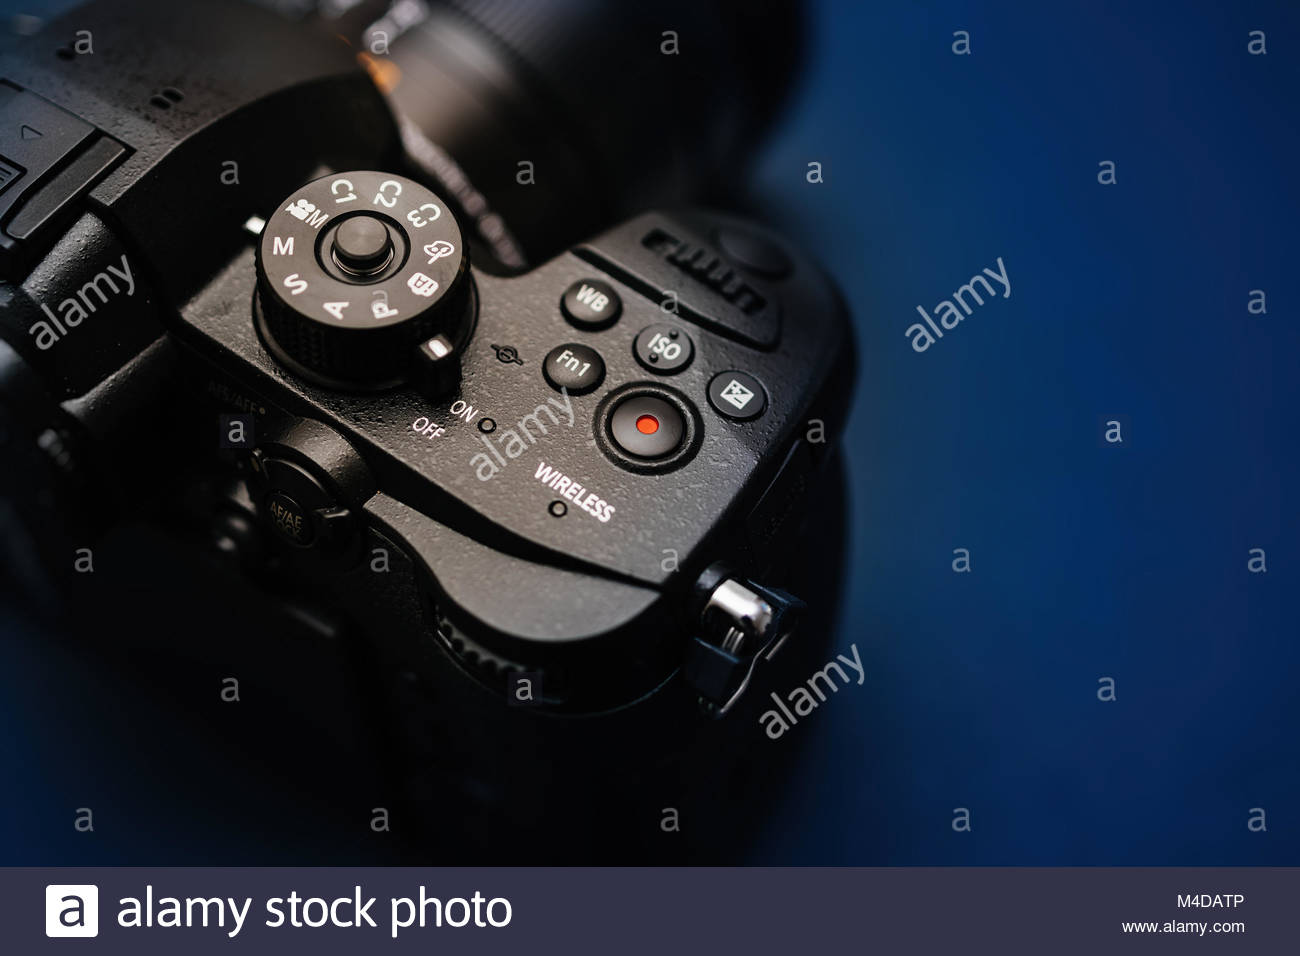 New Panasonic Lumix GH5 and Leica 12-60 camera lens - Stock Image